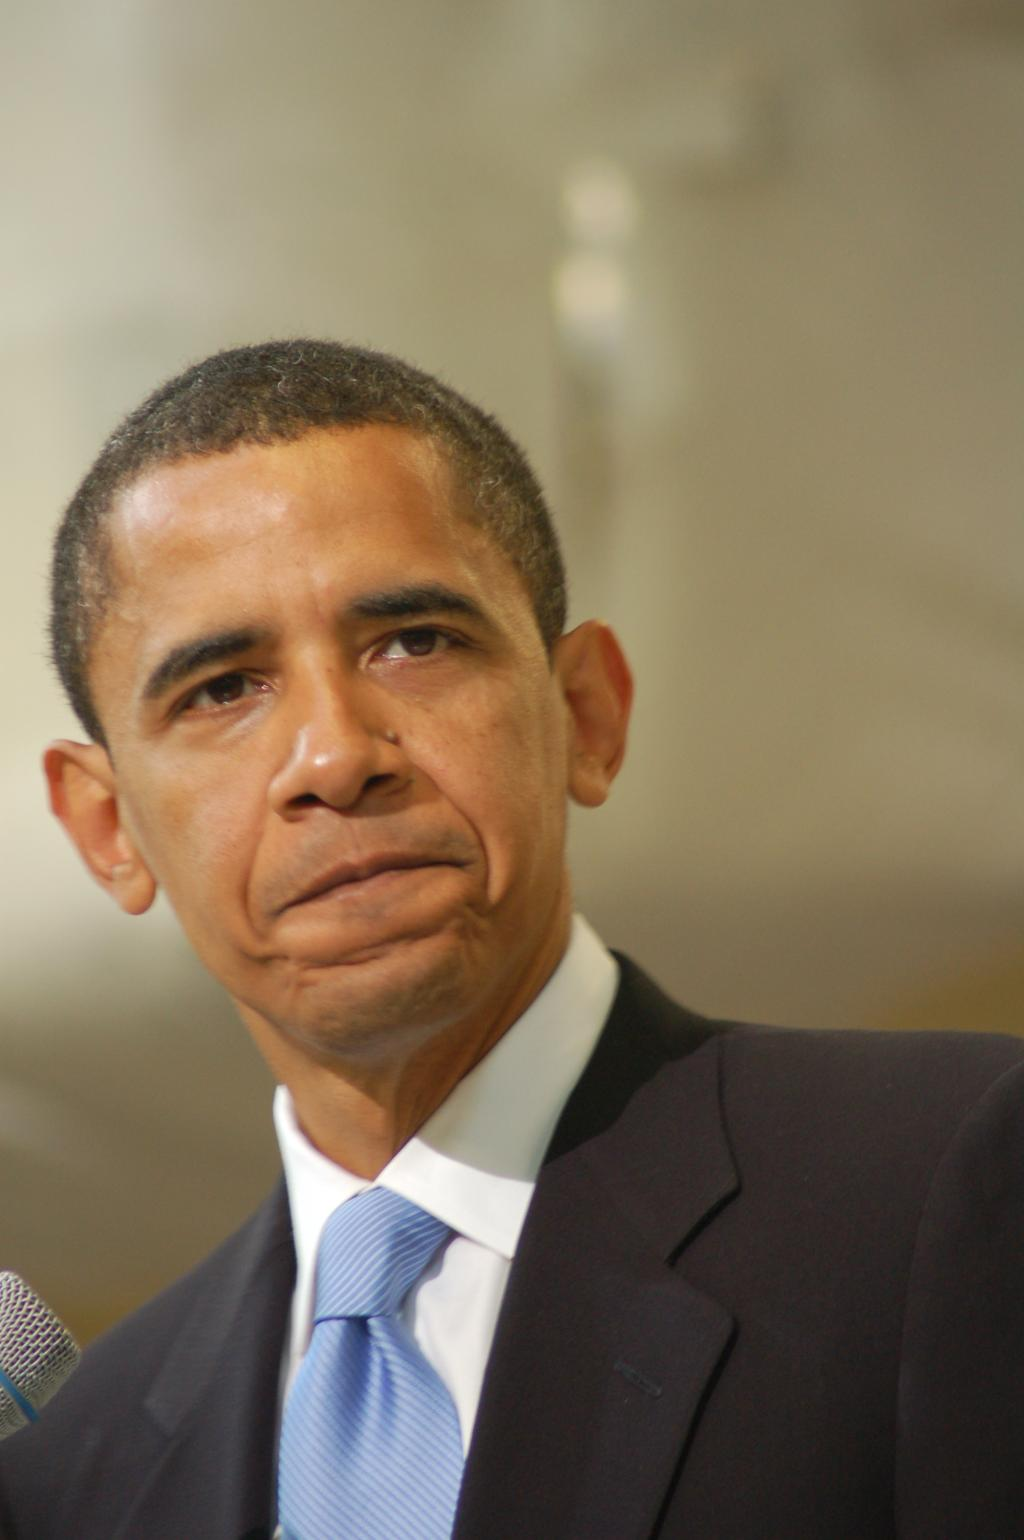 Pres Obama Answers Question on chronic fatigue syndrome